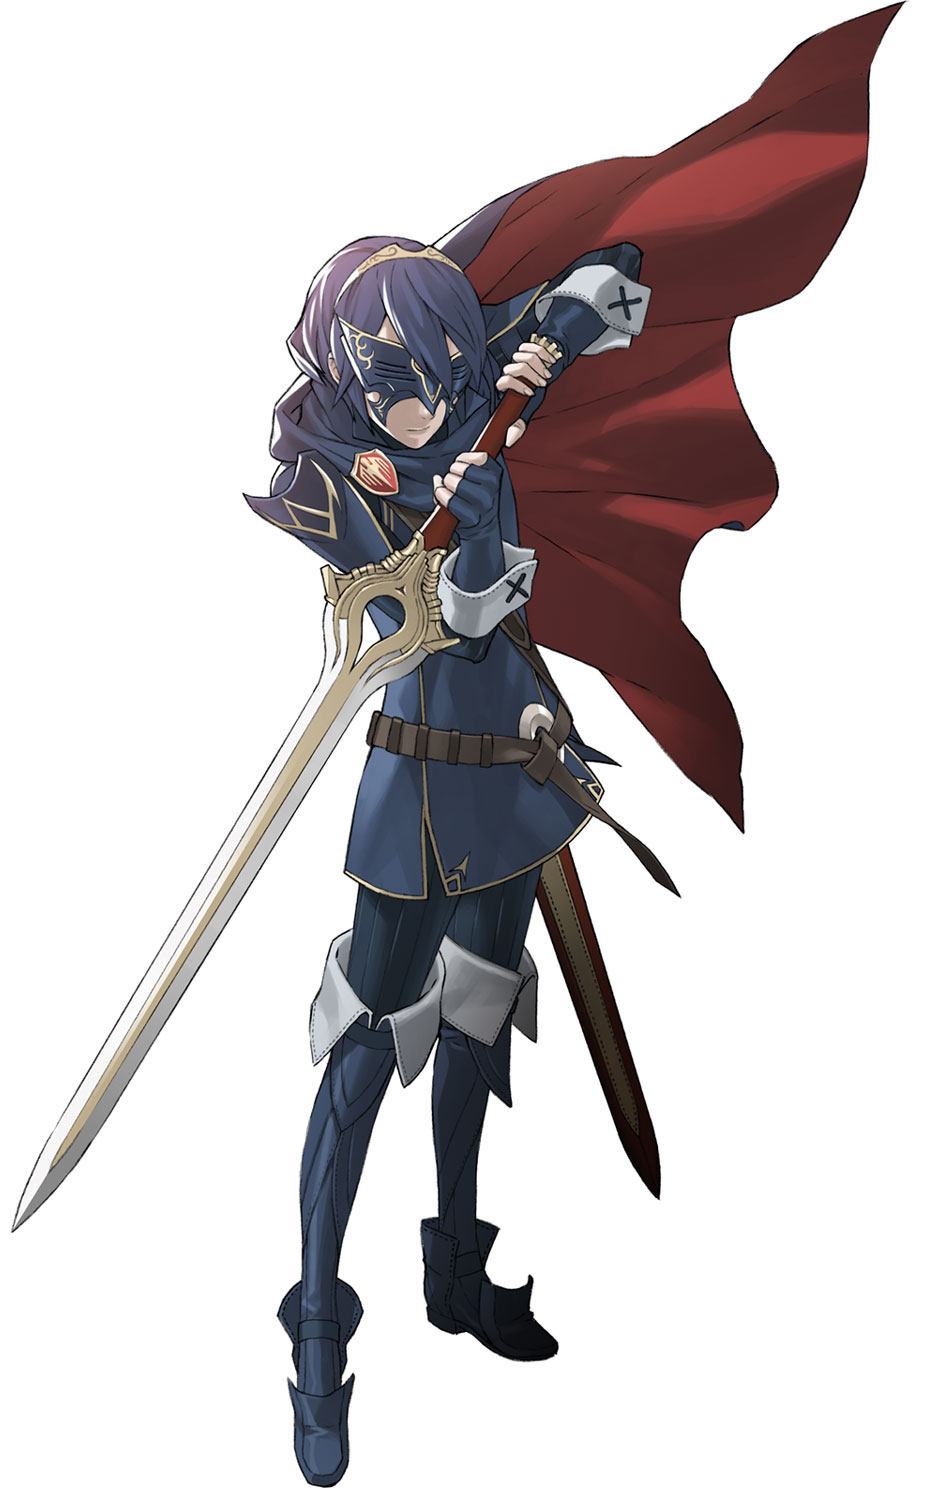 fea-lucina-disguised-as-marth | - 125.1KB